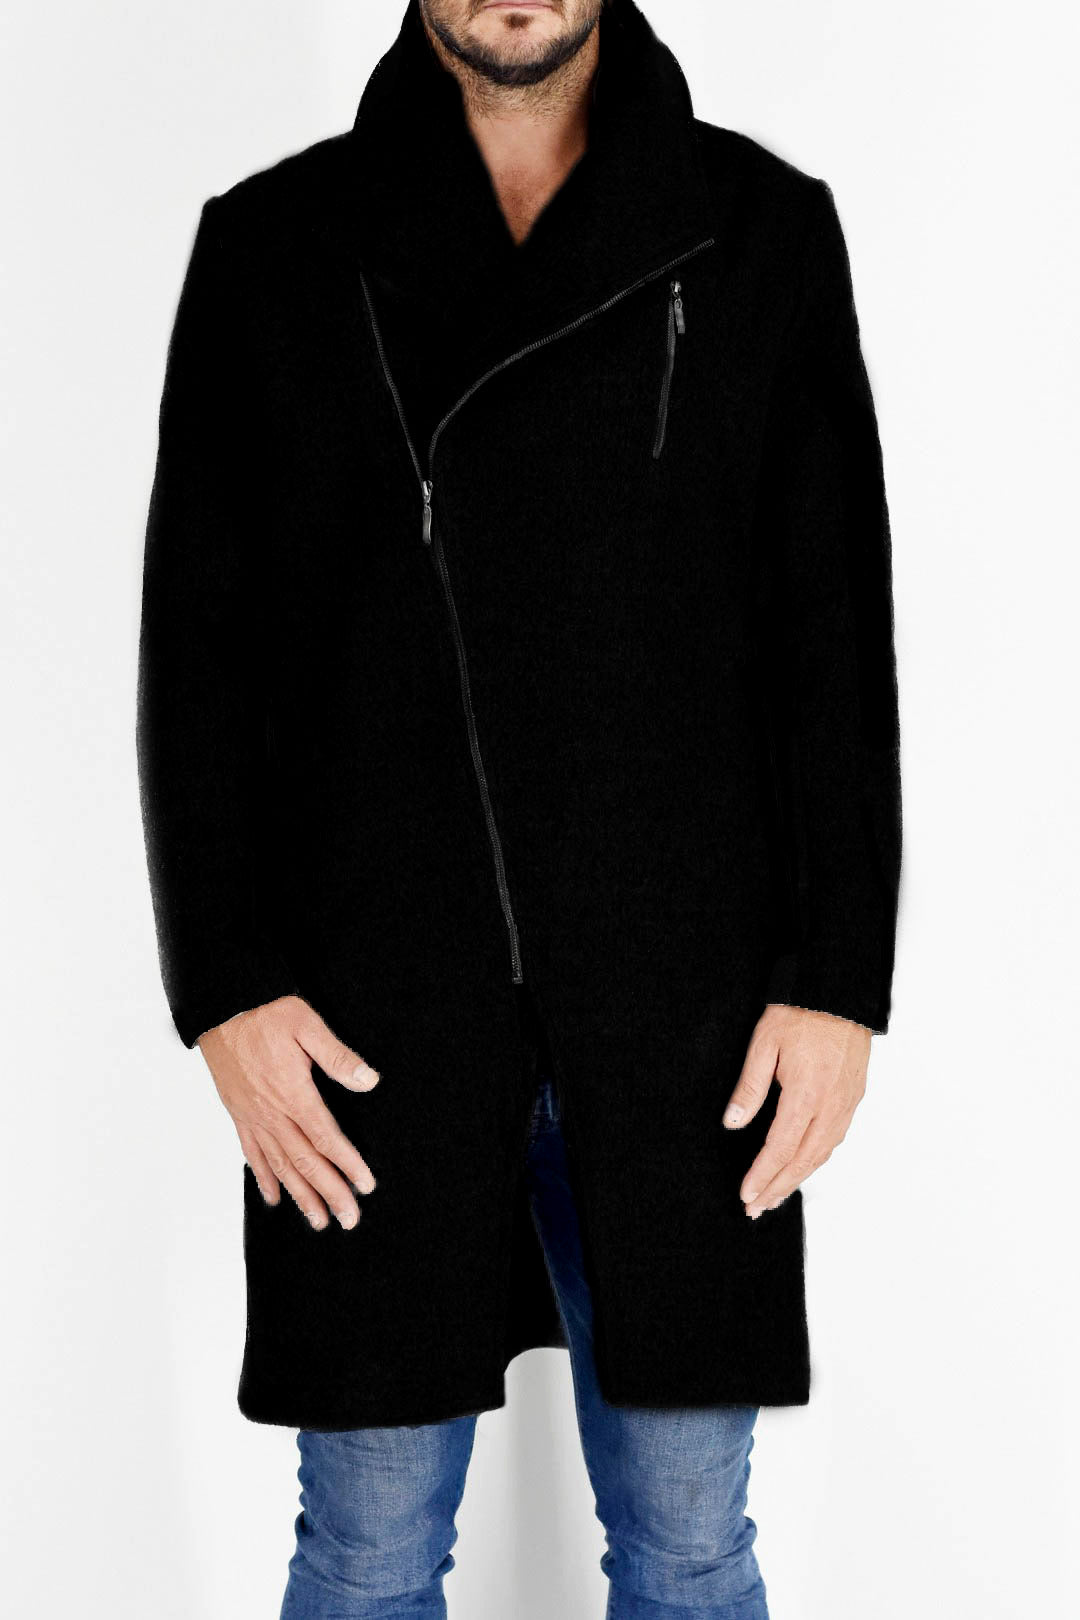 Mens Coat in Black Wool Melton ZG5216